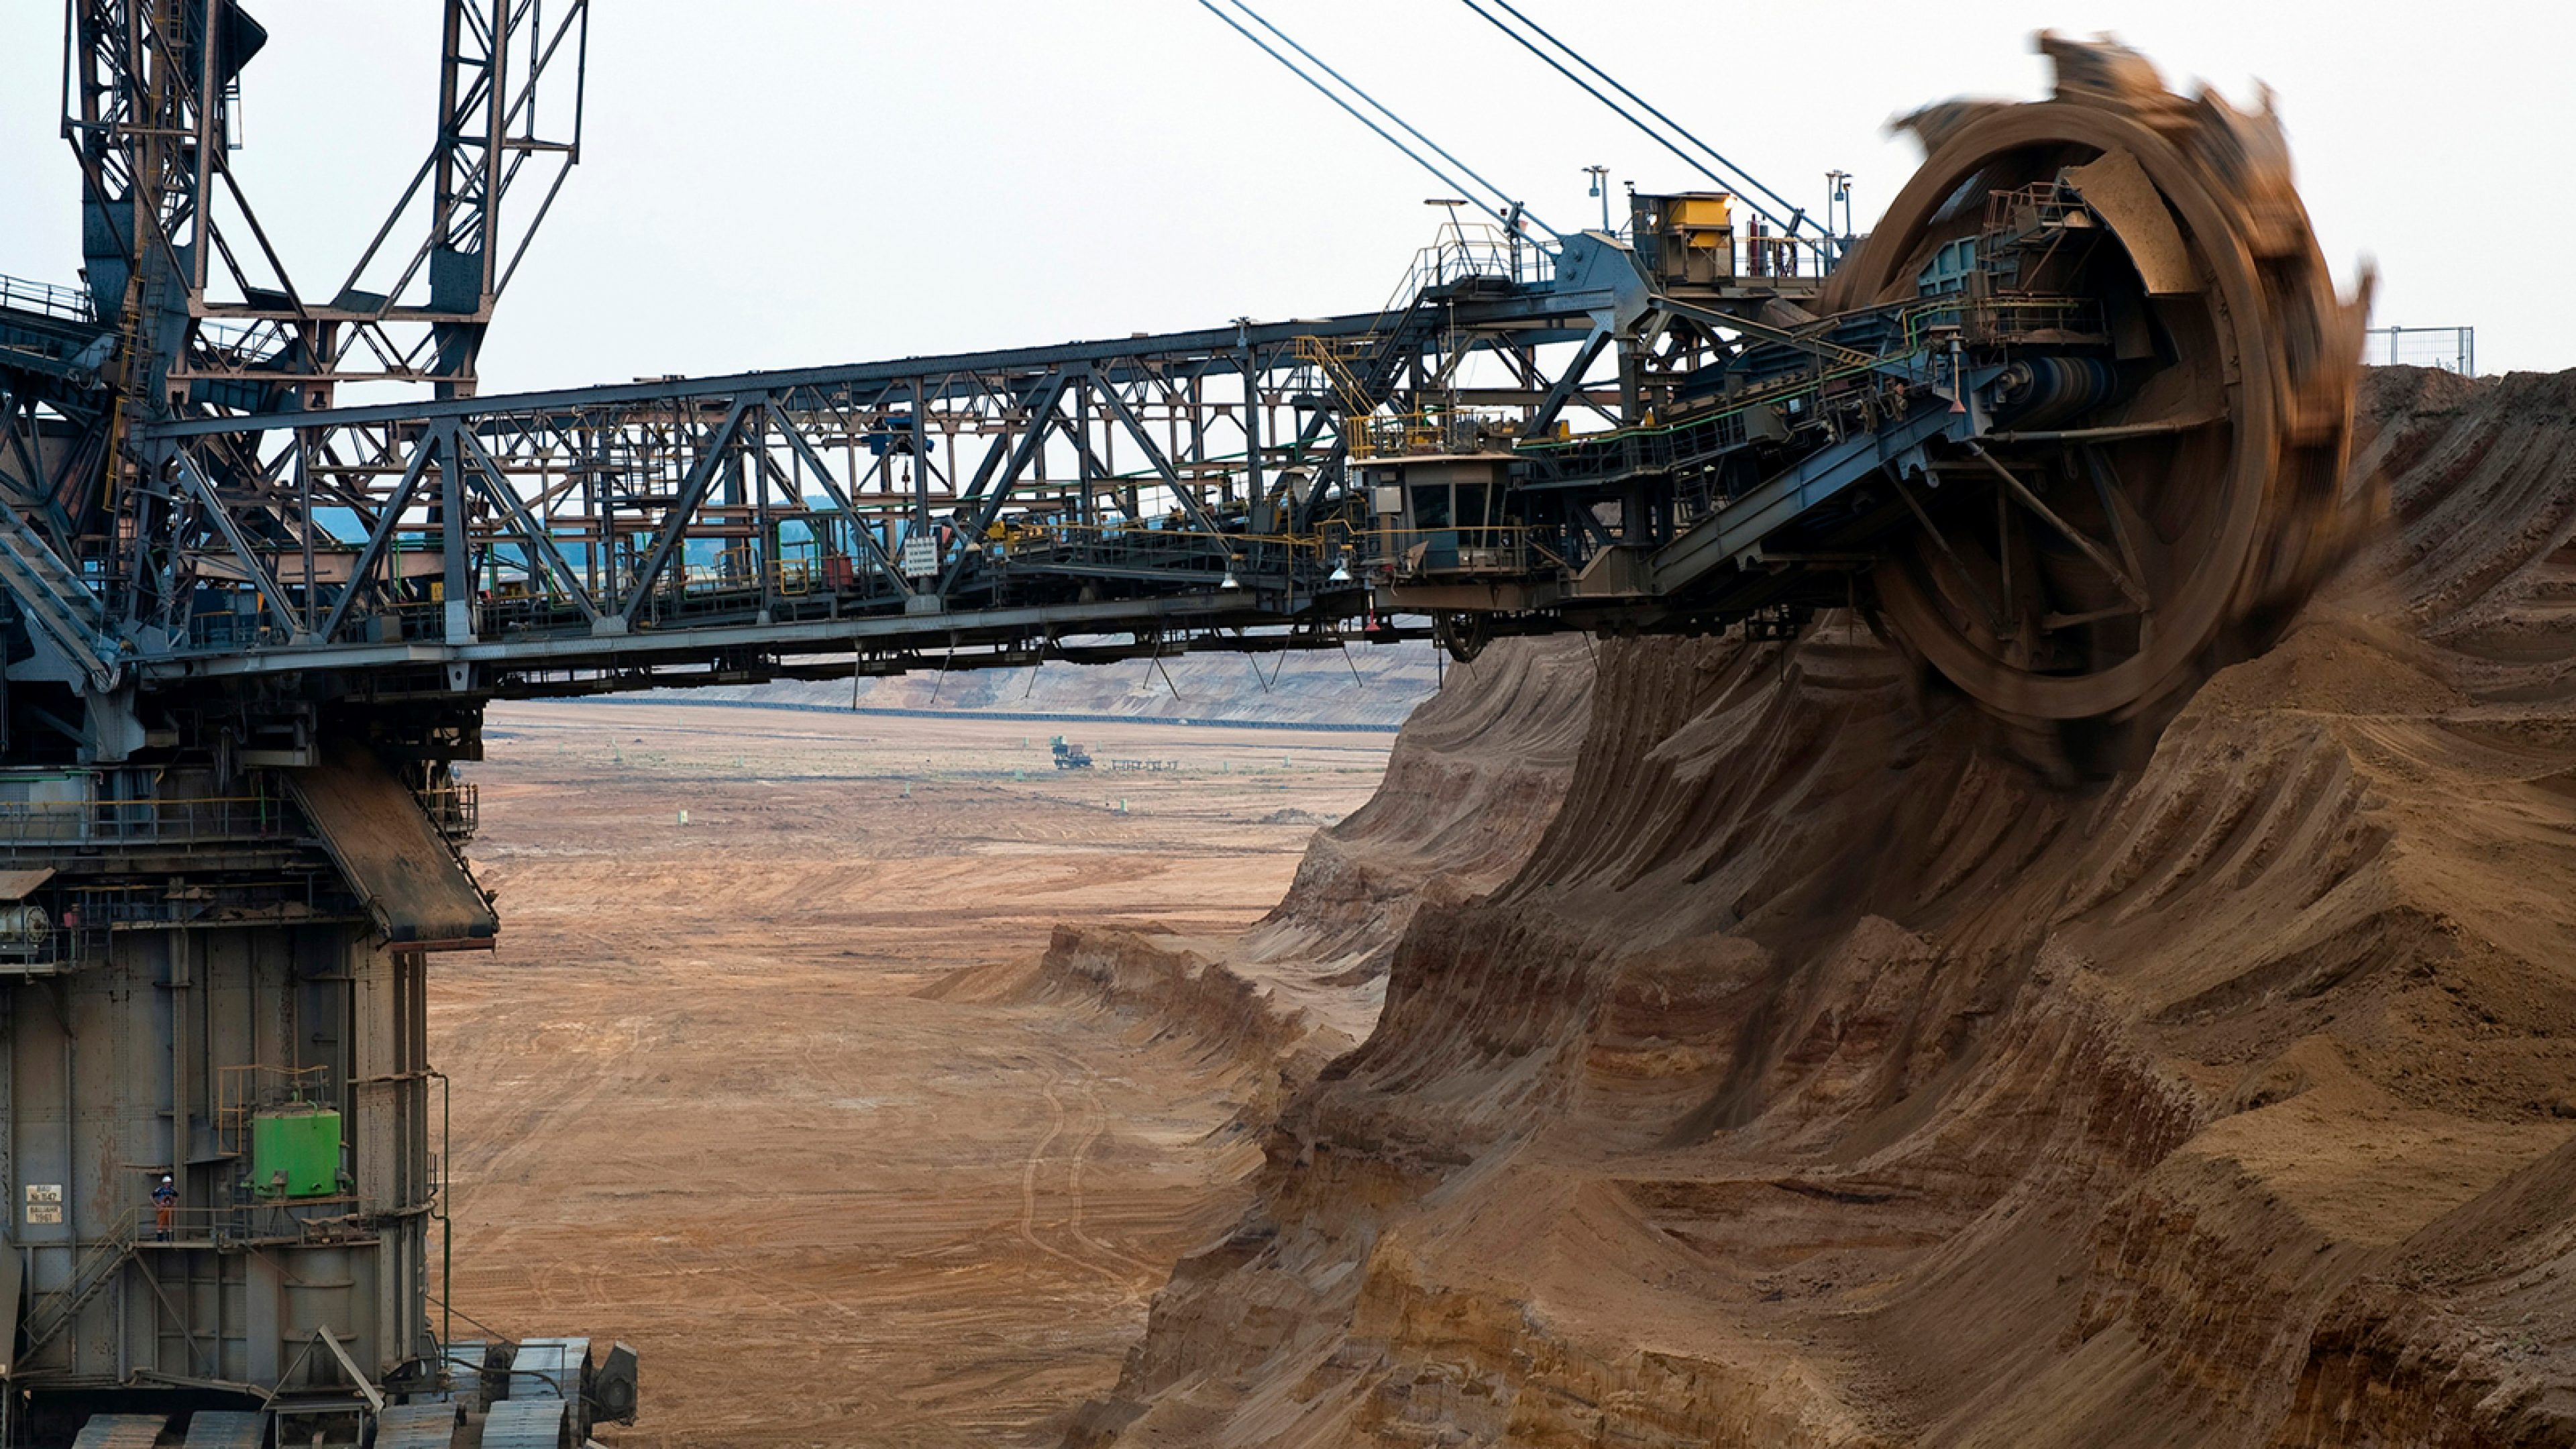 Bucket-wheel excavator on the slope of open pit